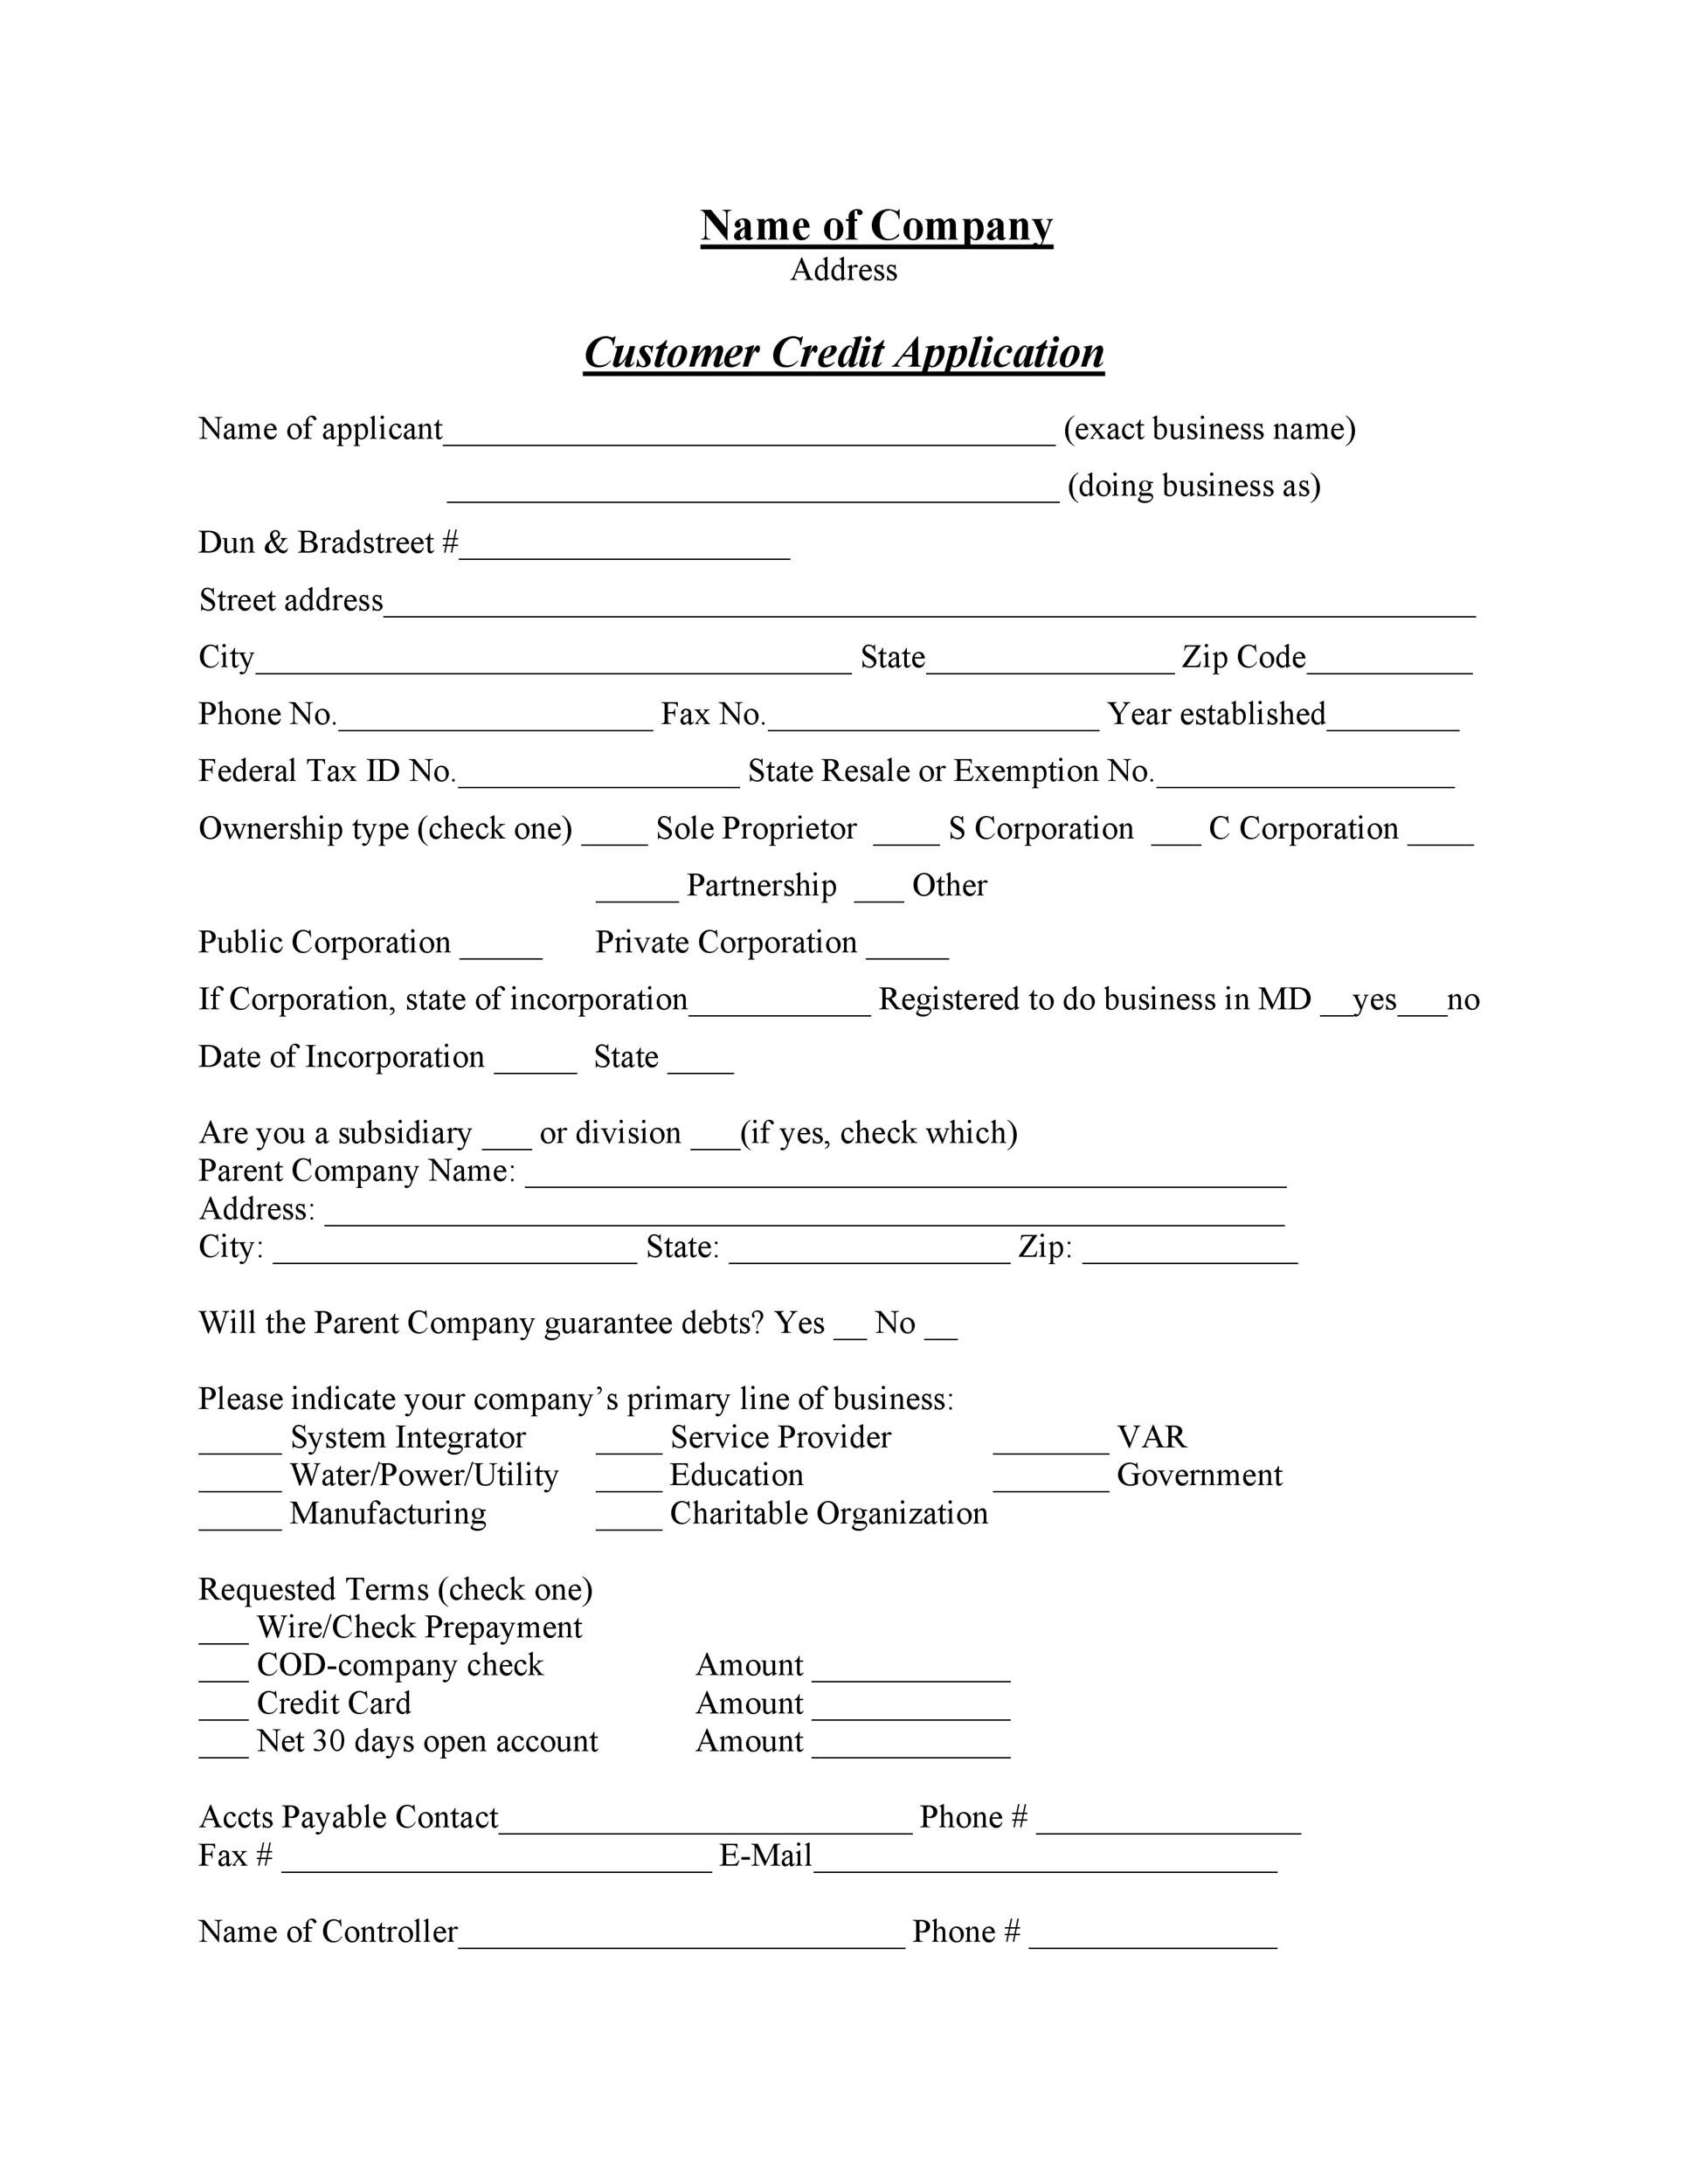 Free Credit Application Form 08